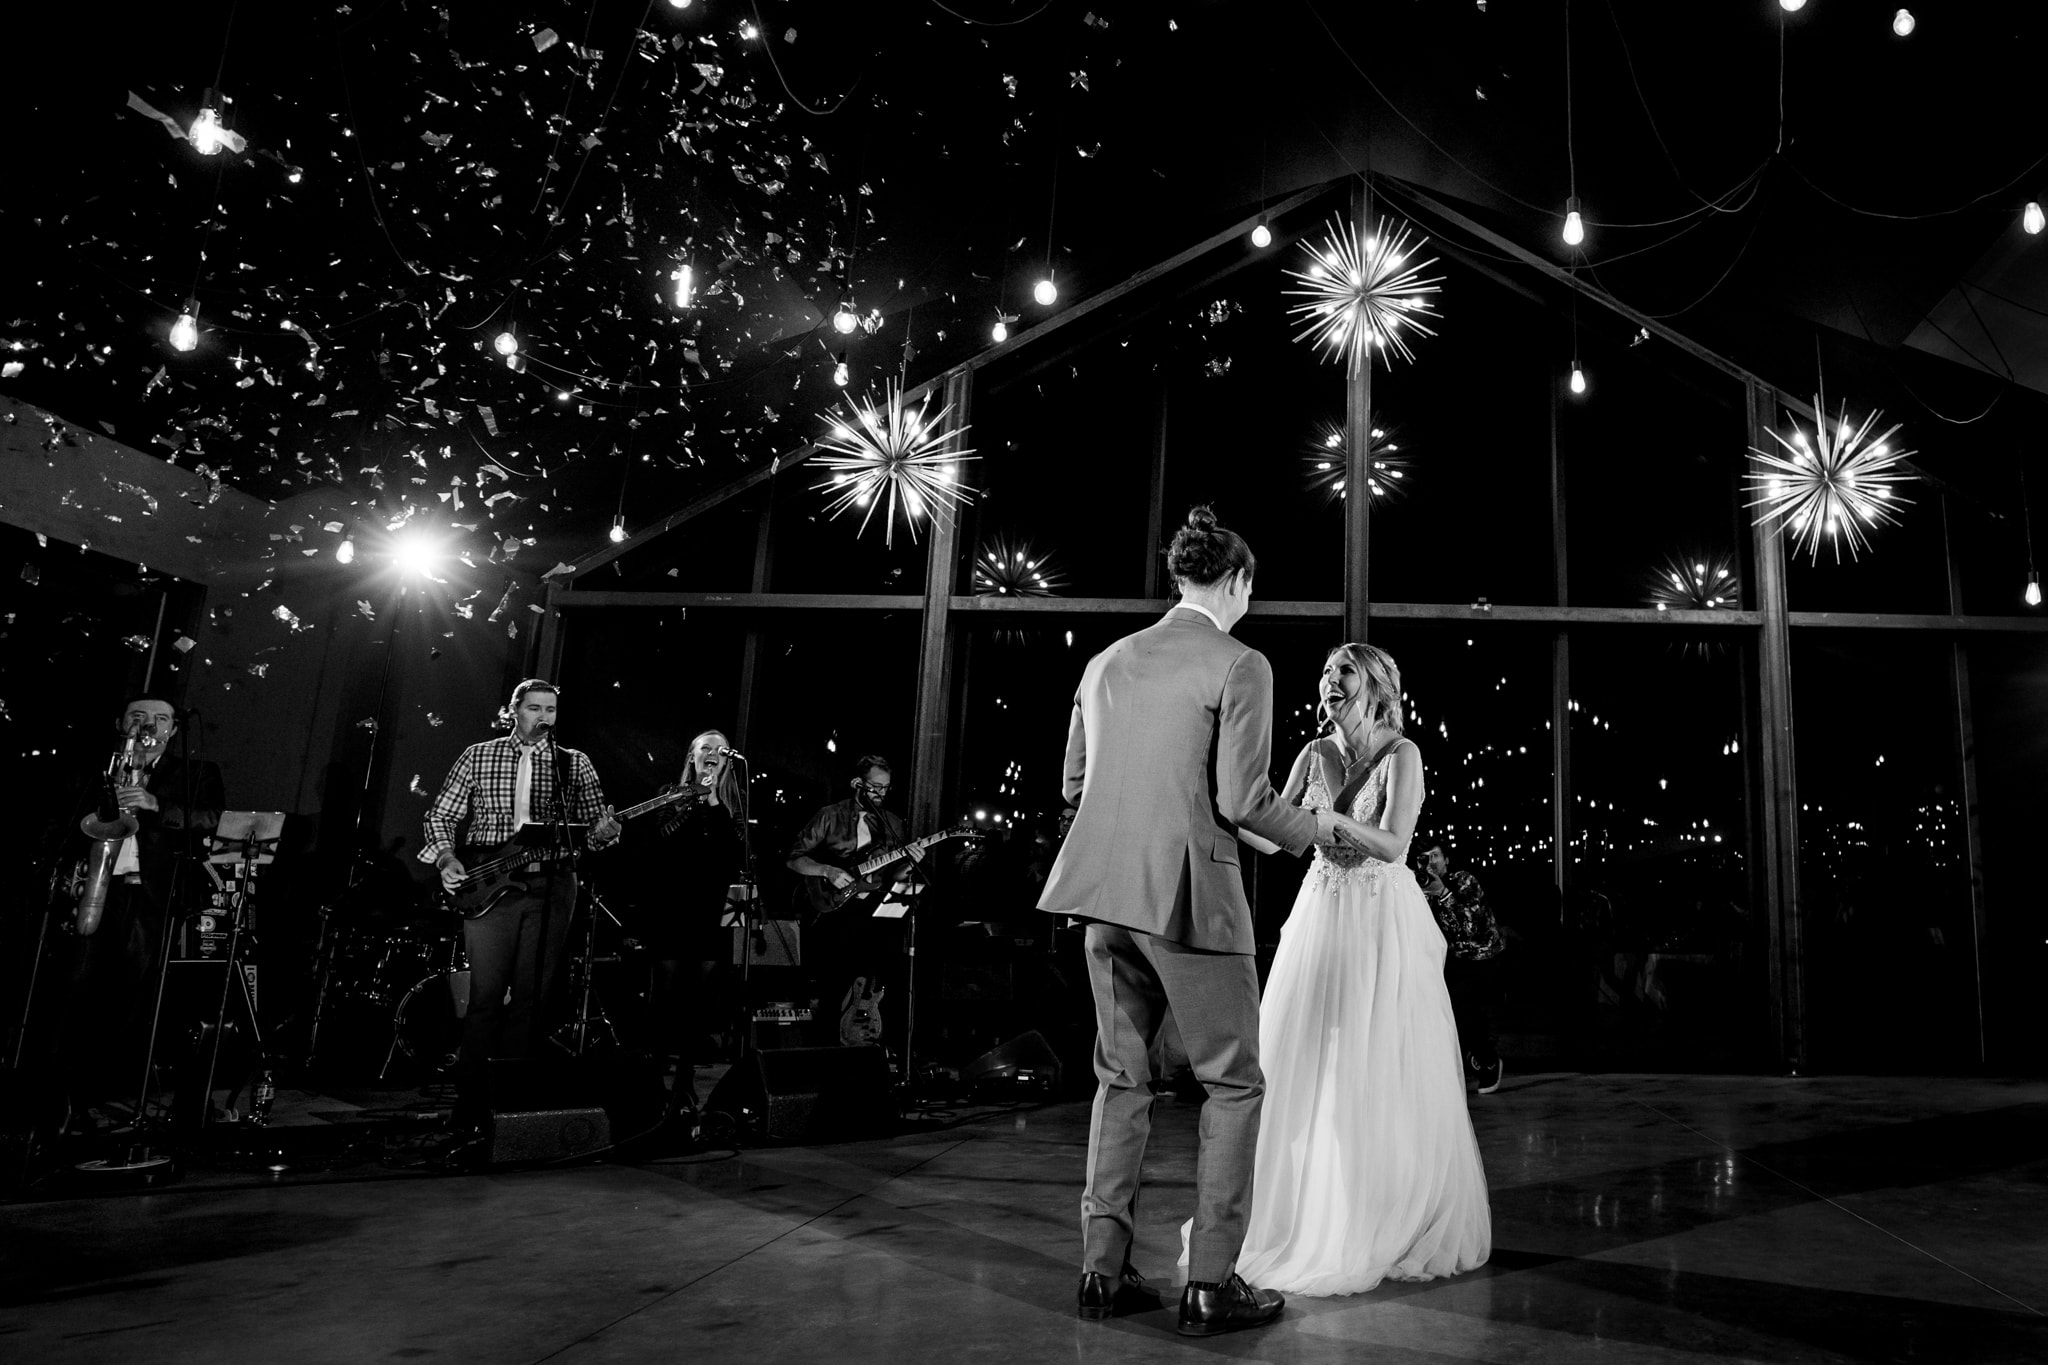 Bride and groom dancing with confetti raining down